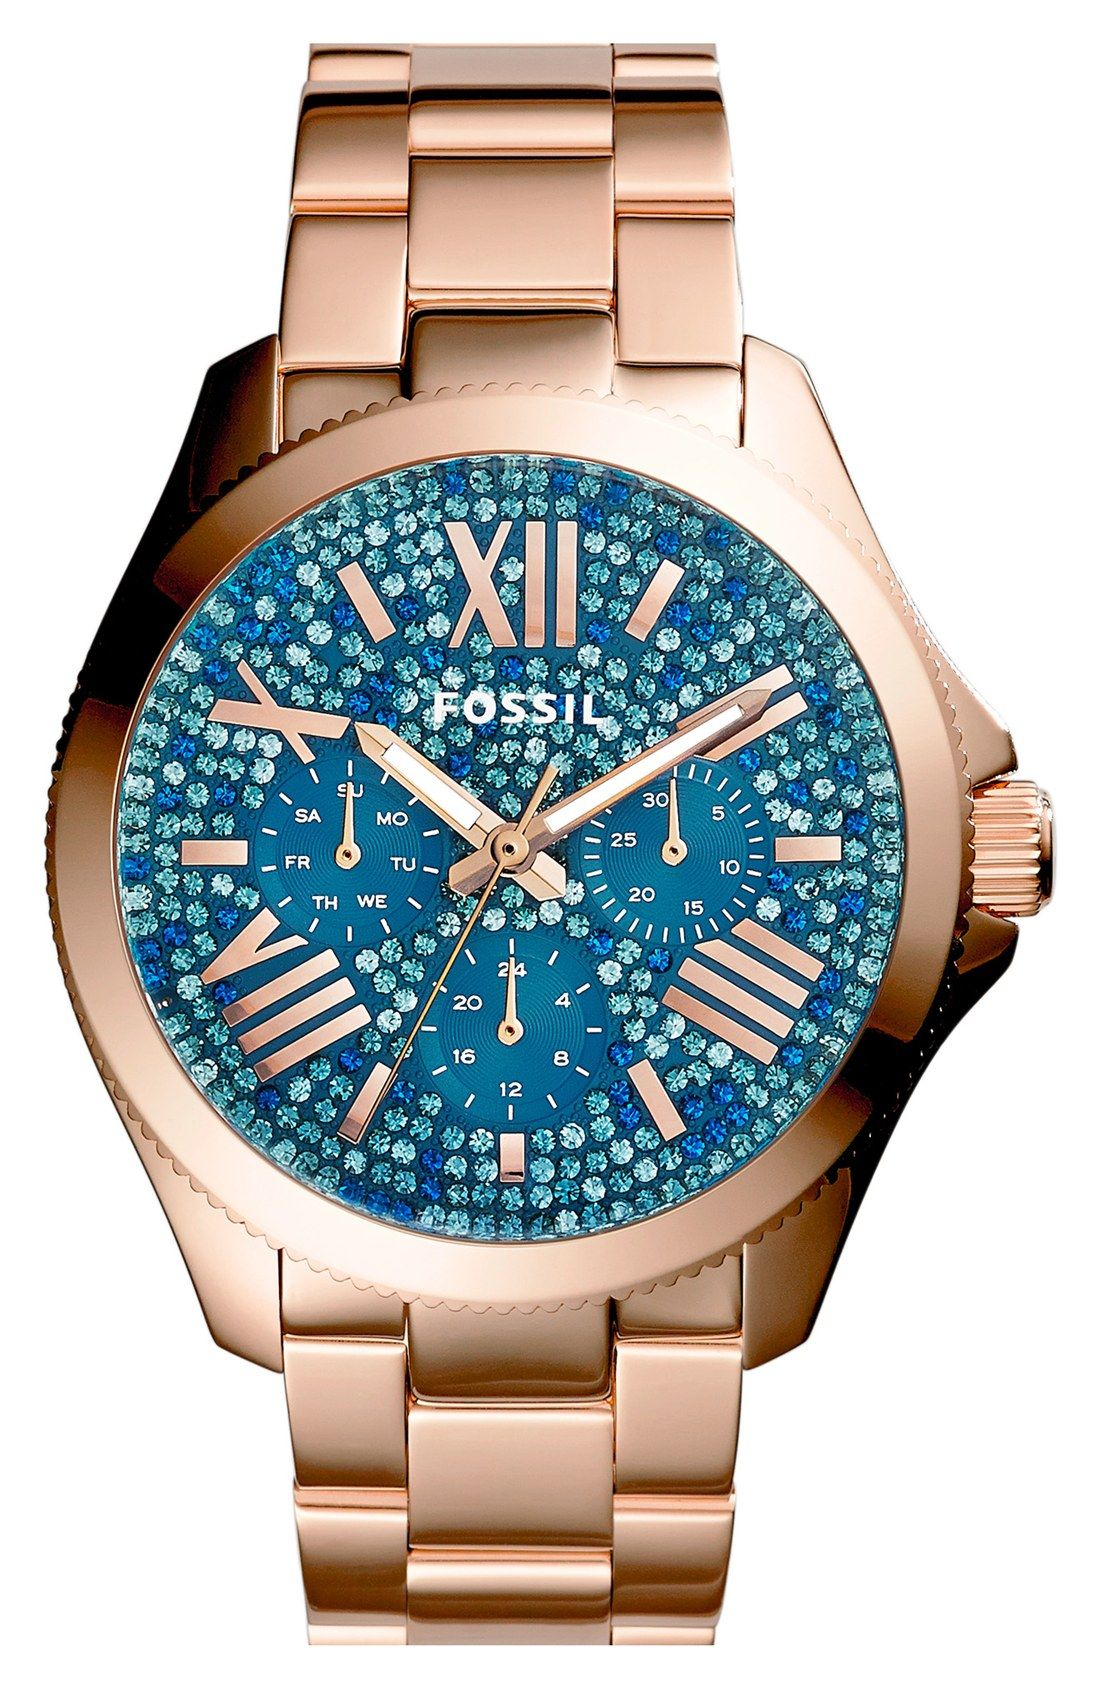 Gorgeous watch face on this gold Fossil  | Accessorize